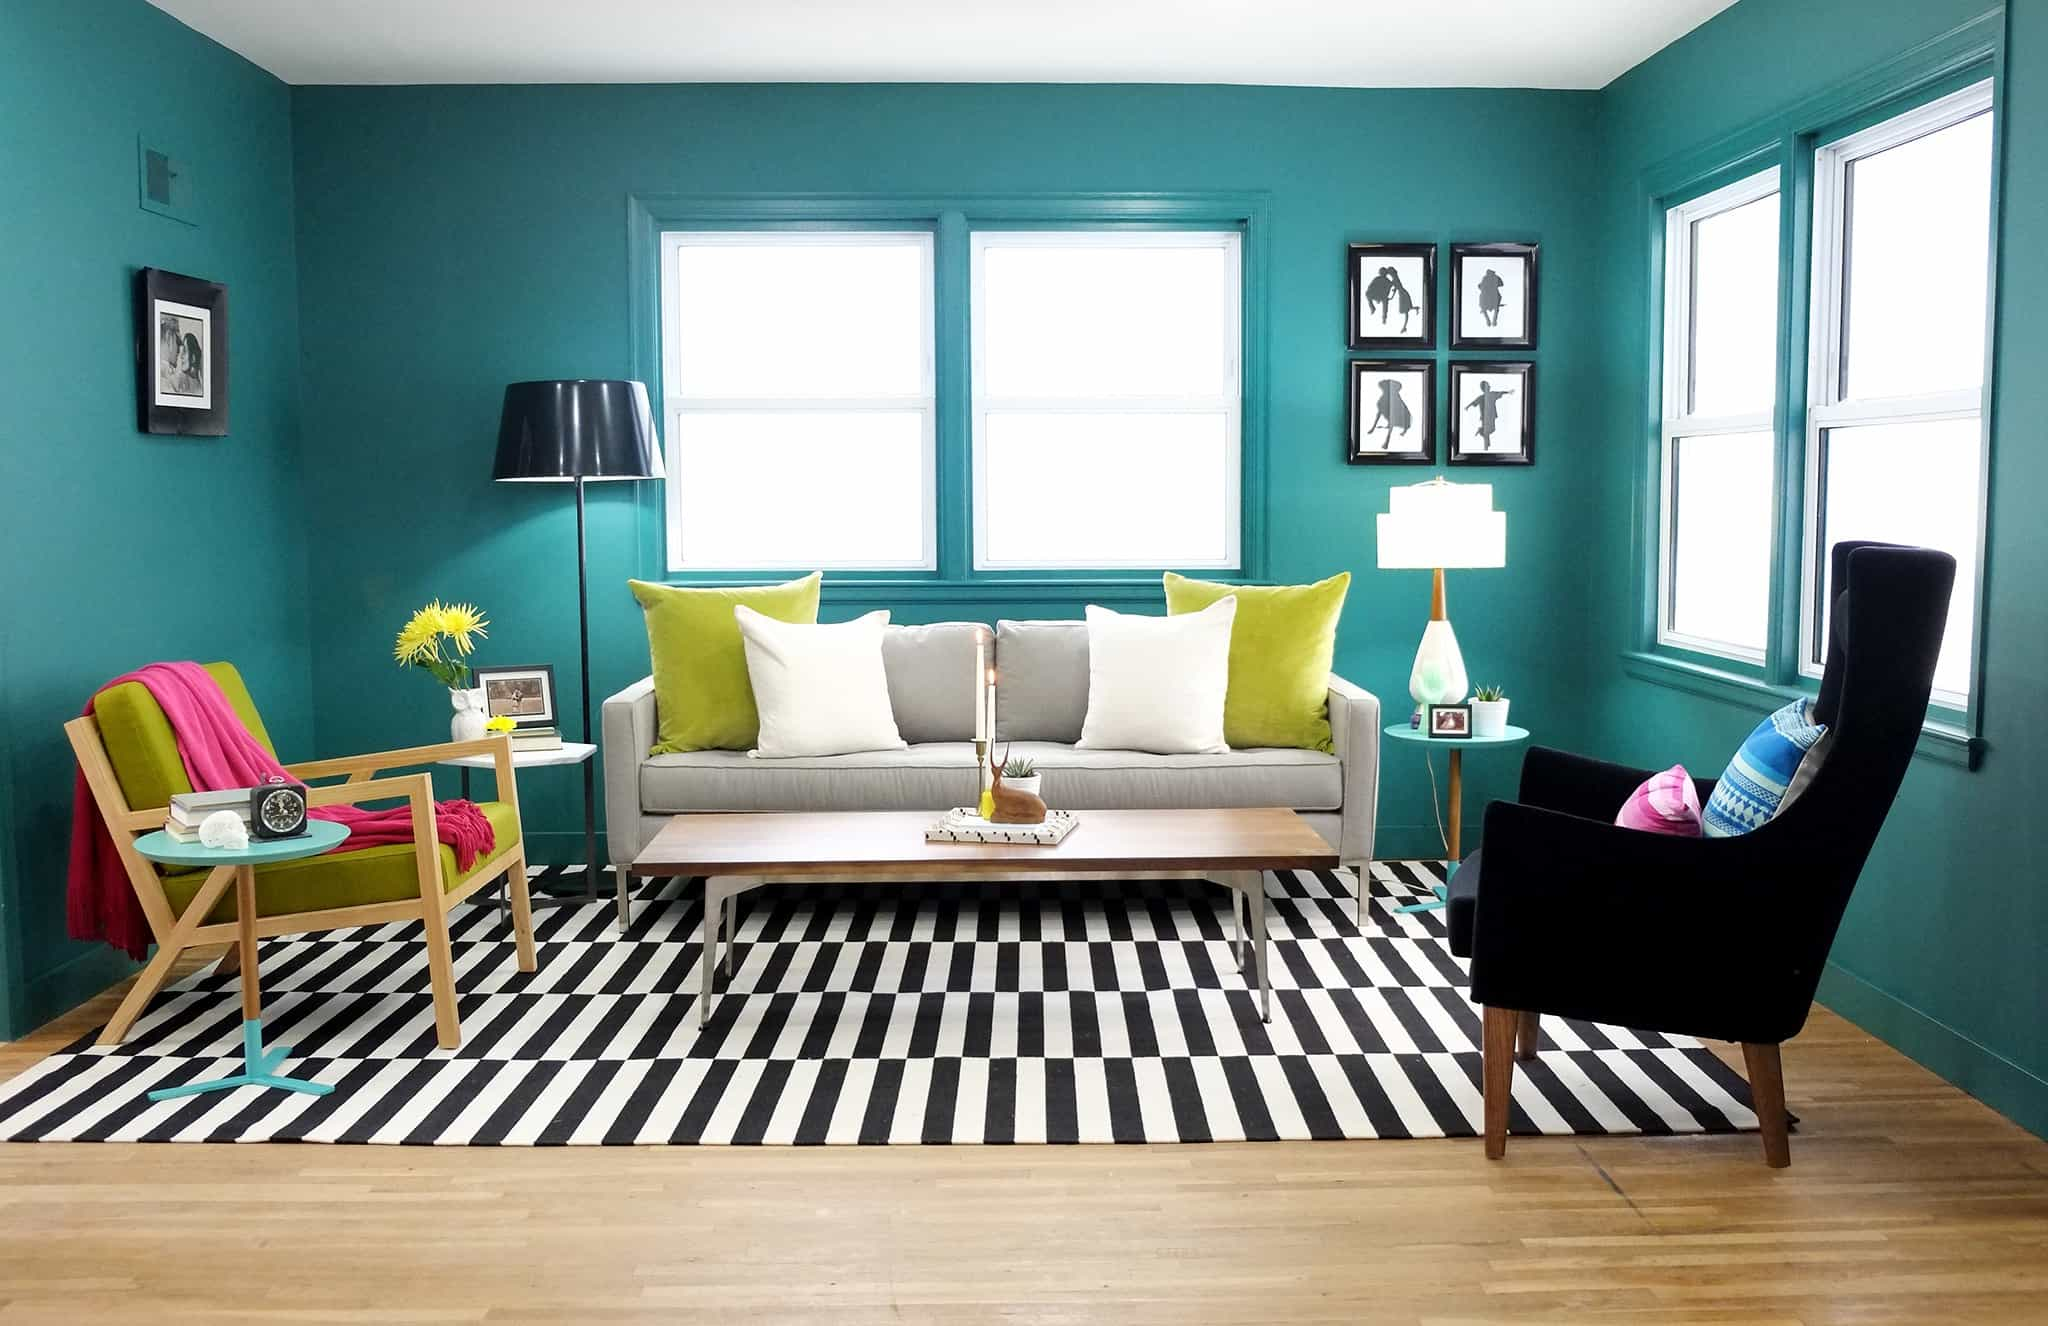 Black And White Rug For Trendy Living Room Decor (View 27 of 28)